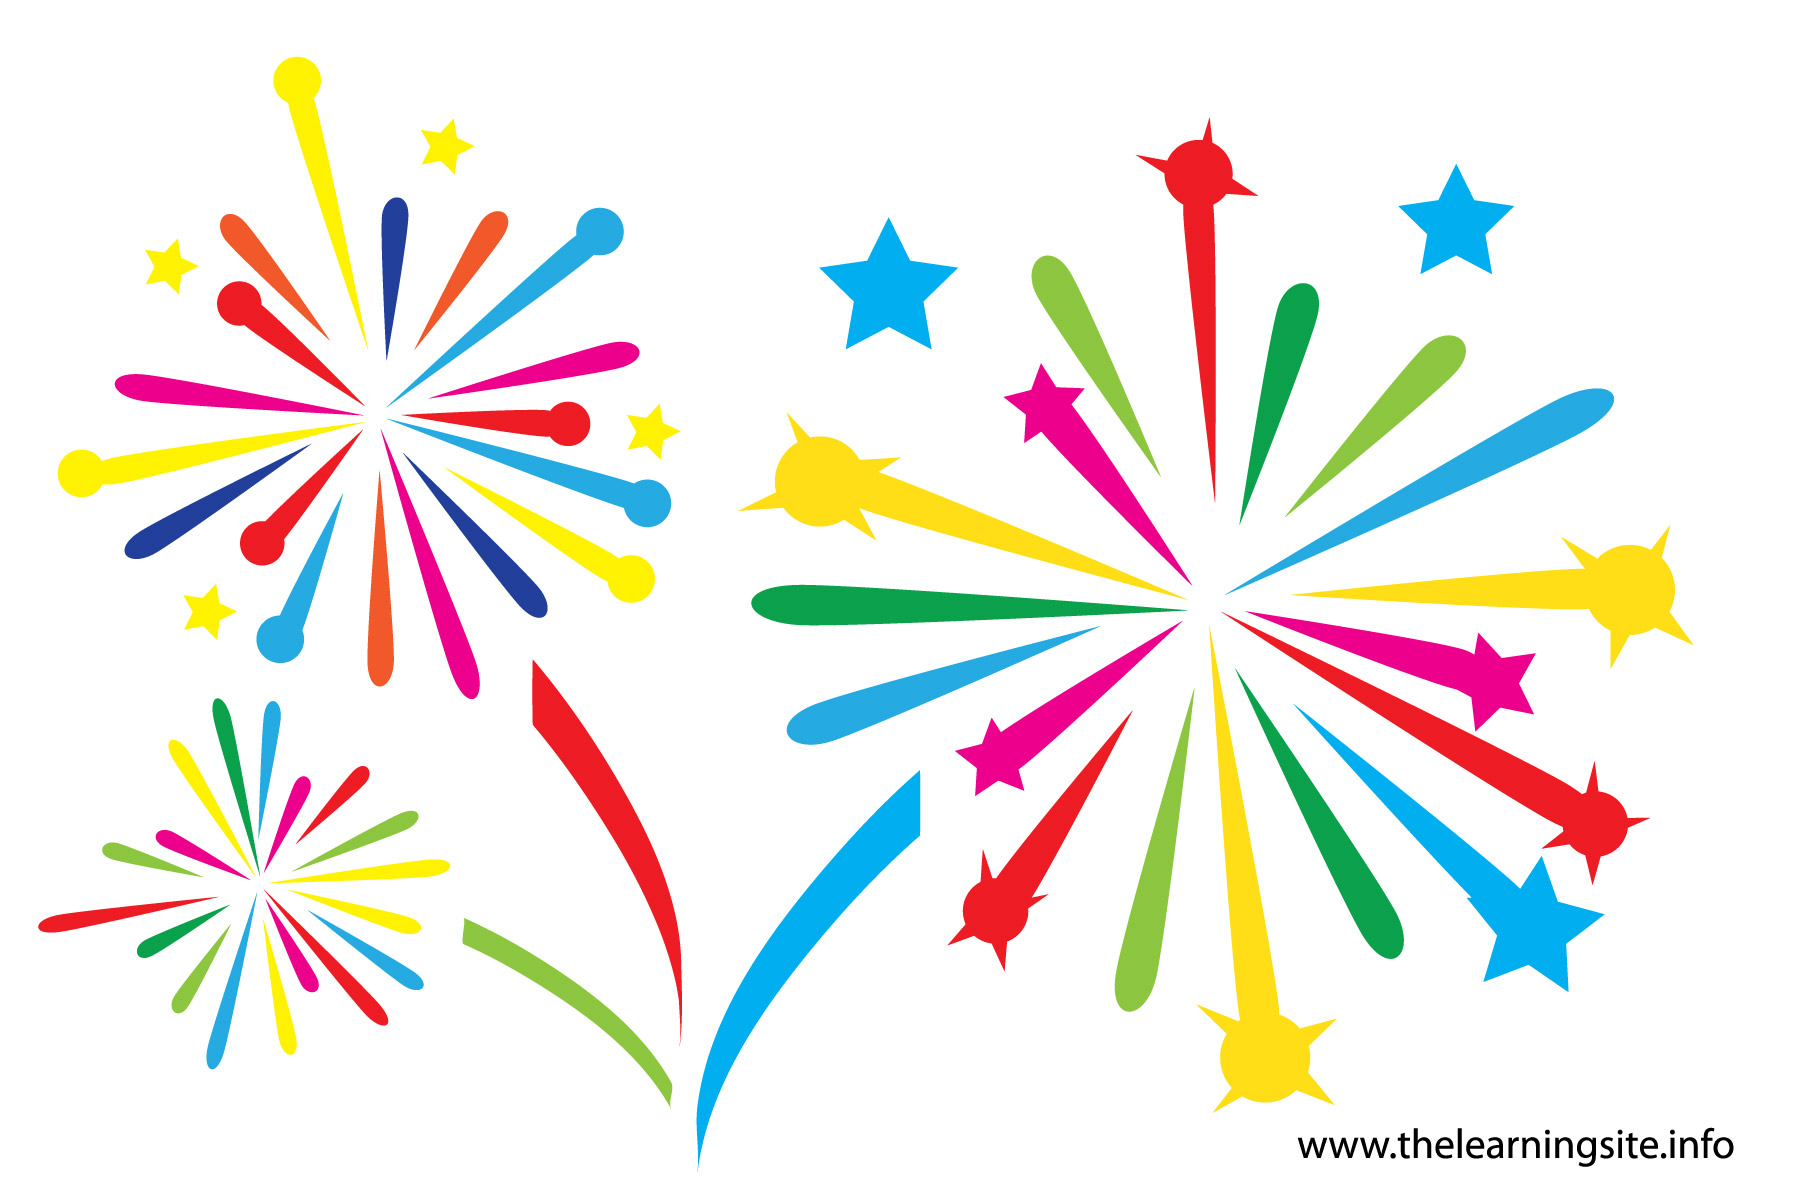 Free fireworks clipart image 0-Free fireworks clipart image 0-7